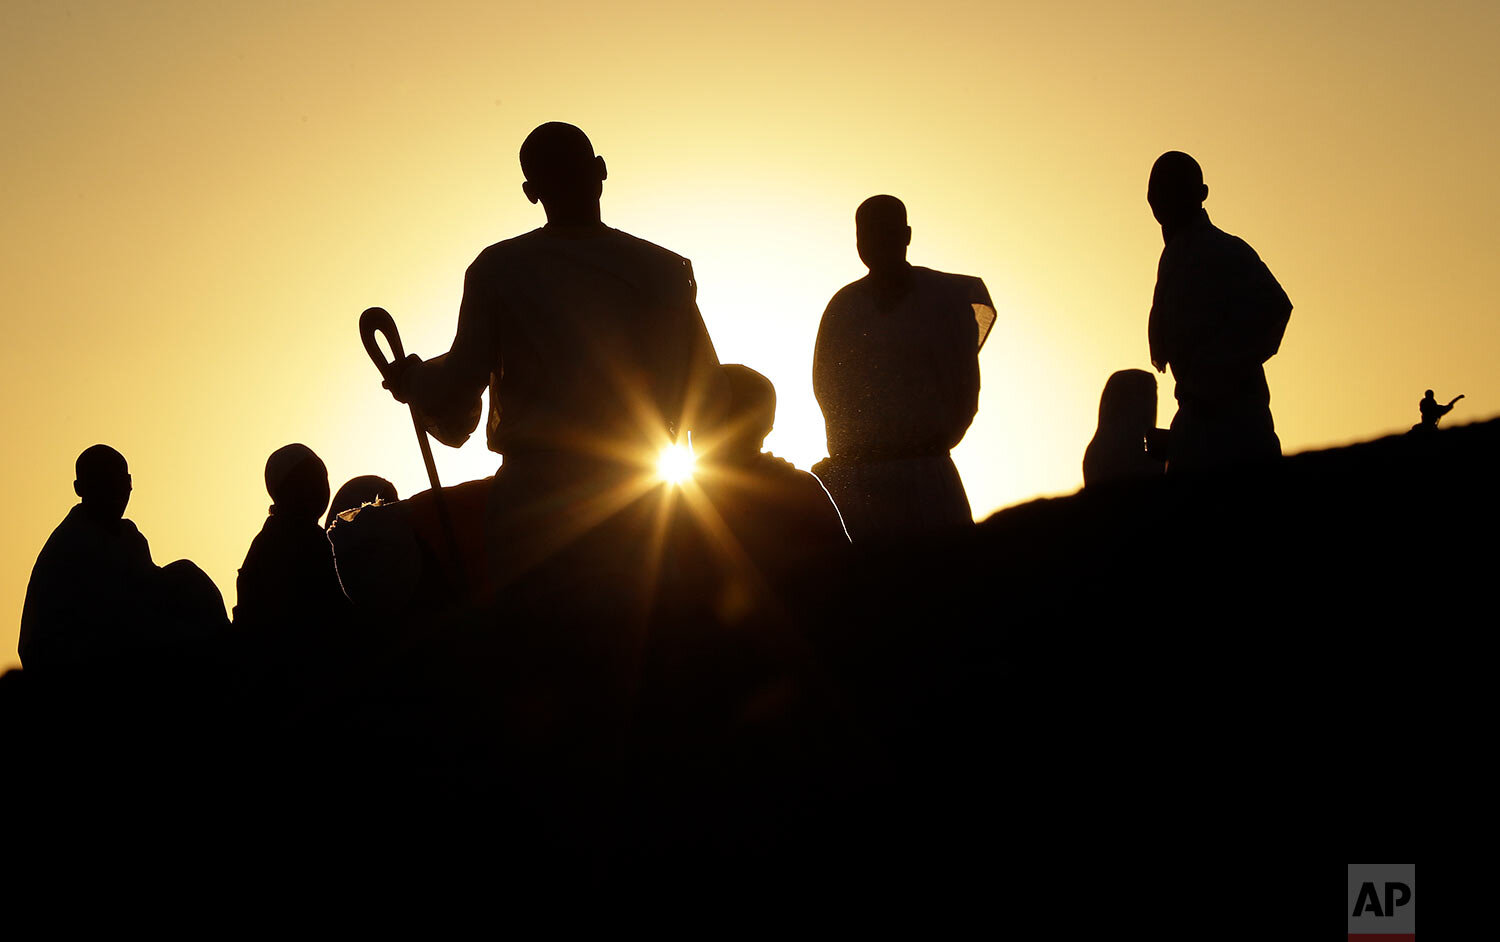 Zimbabweans sit and pray on top of a large rock on the outskirts of Harare, Zimbabwe, Sept. 8, 2019. (AP Photo/Themba Hadebe)